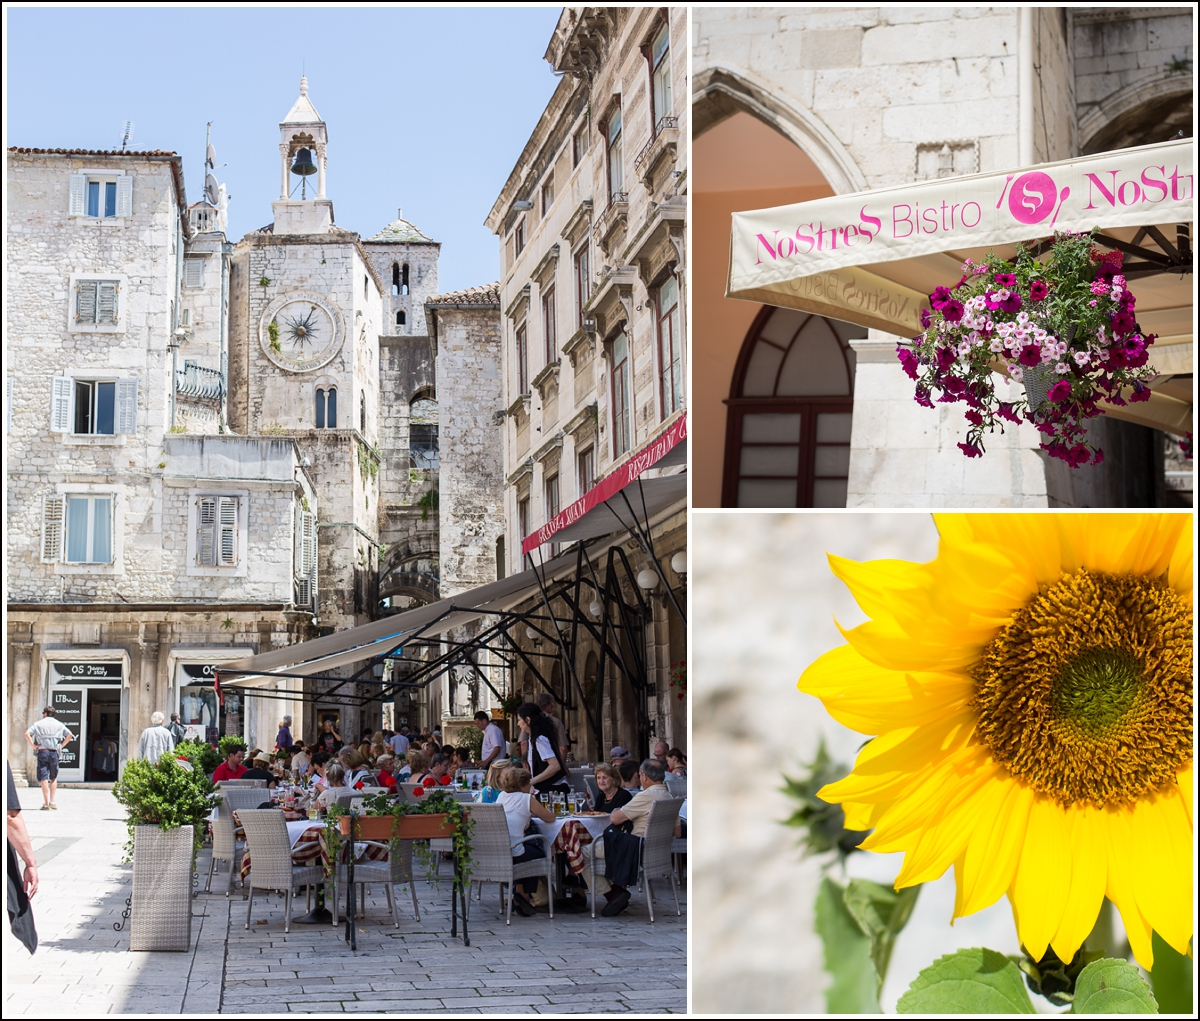 split-old-town-flowers